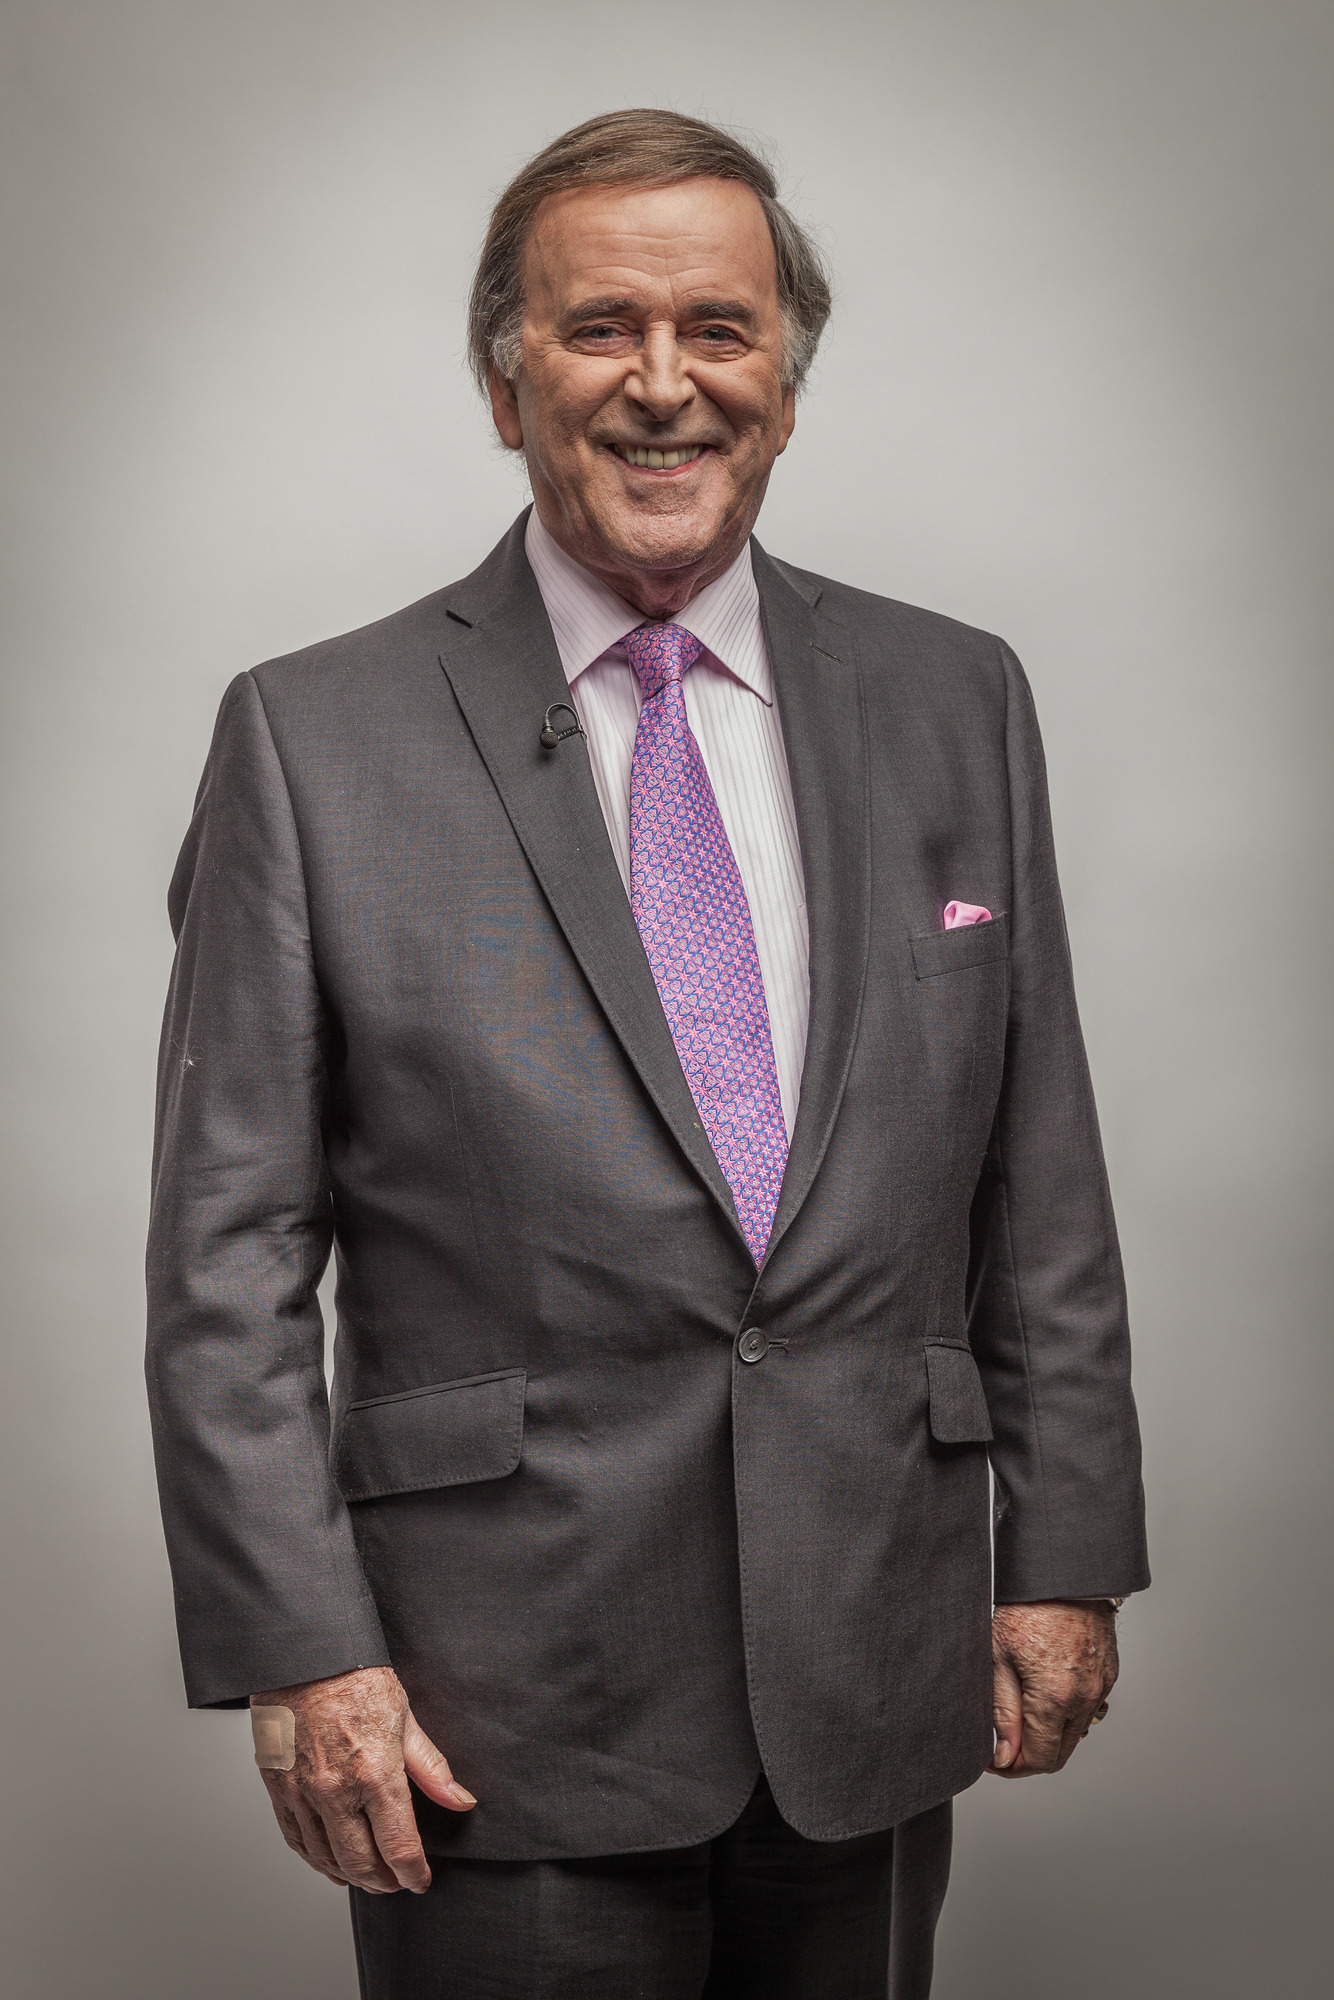 Programme Name: Goodbye Television Centre - TX: n/a - Episode: n/a (No. n/a) - Embargoed for publication until: n/a - Picture Shows: Sir Terry Wogan - (C) BBC - Photographer: Guy Levy